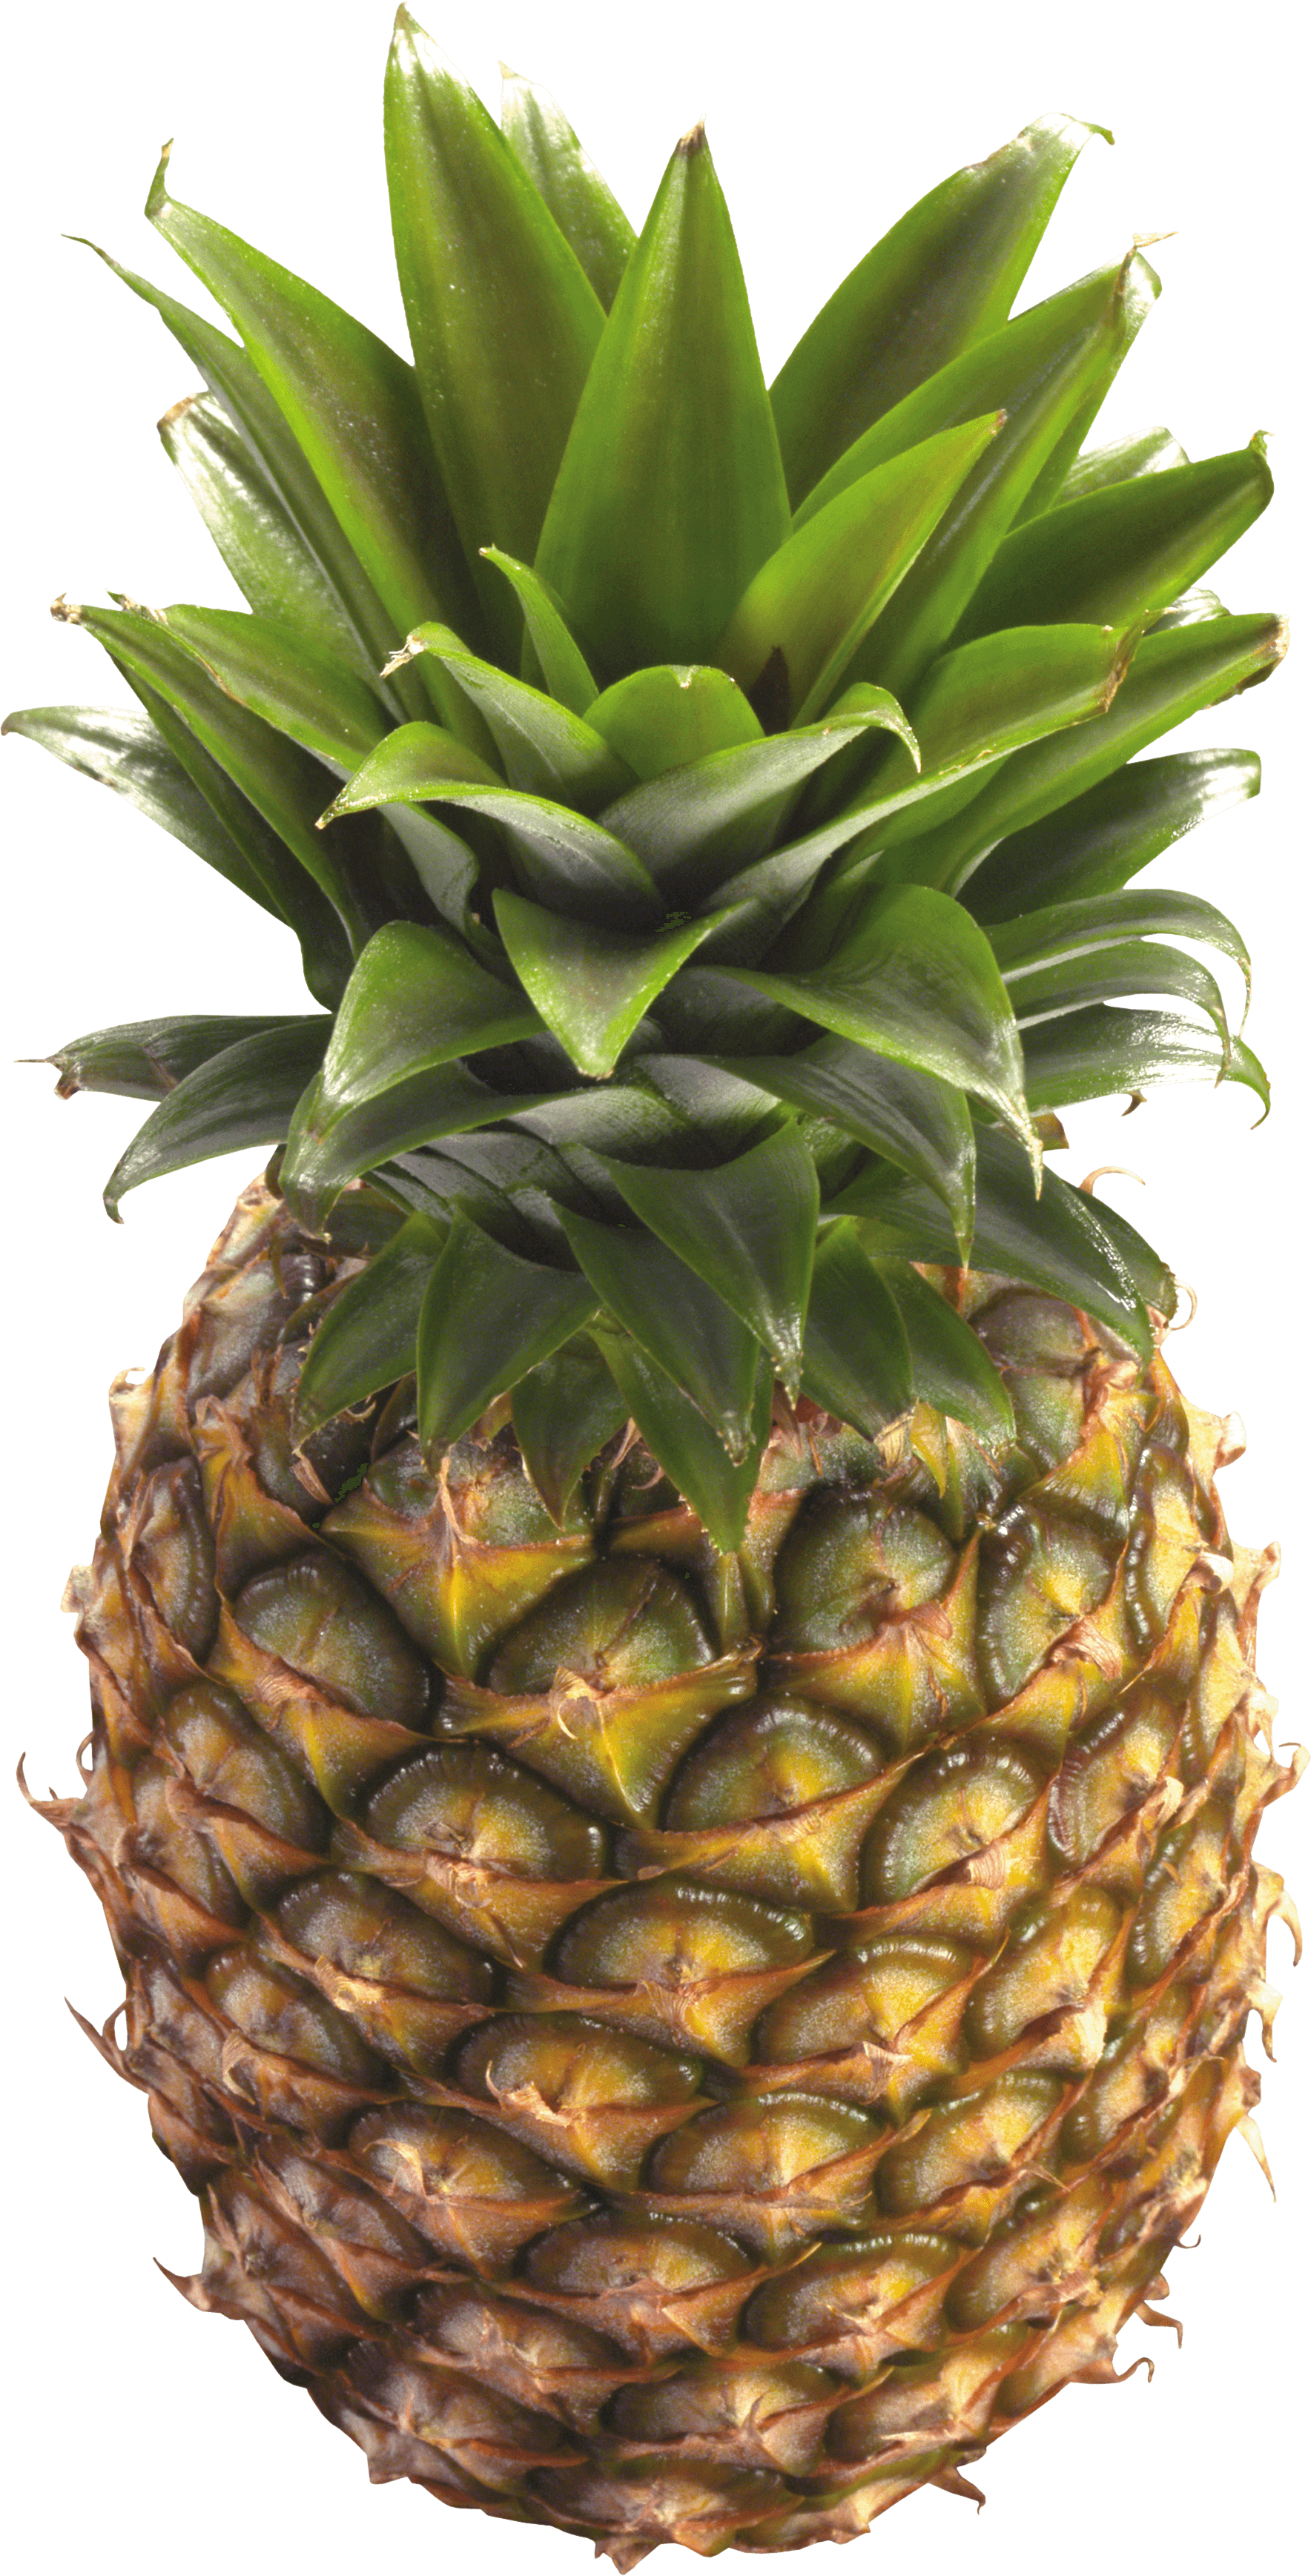 Download Pineapple Png Image Download HQ PNG Image ...